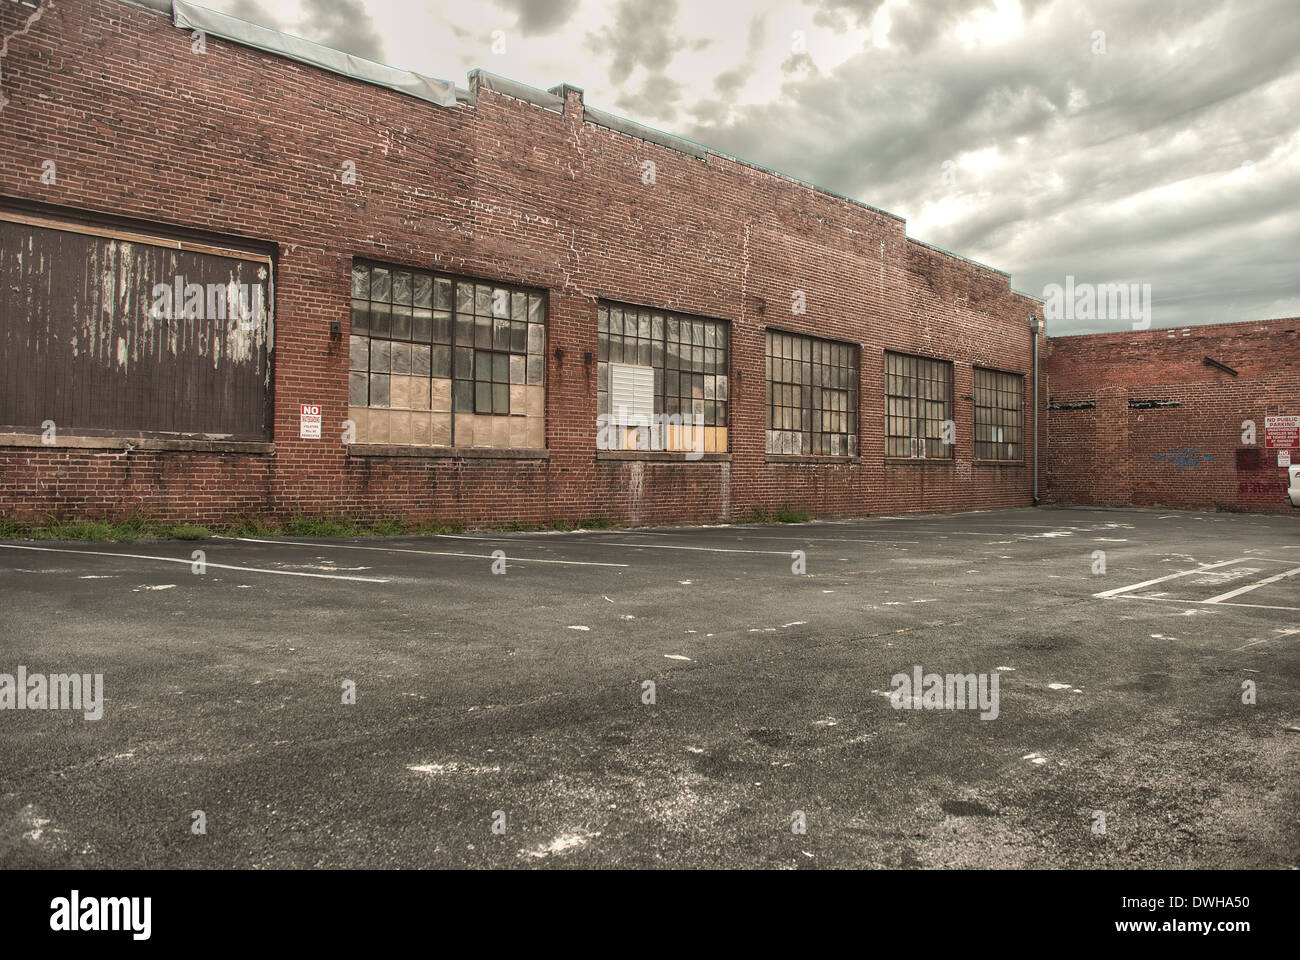 HDR image of a parking lot in an urban area. This image makes a great background for composites. - Stock Image